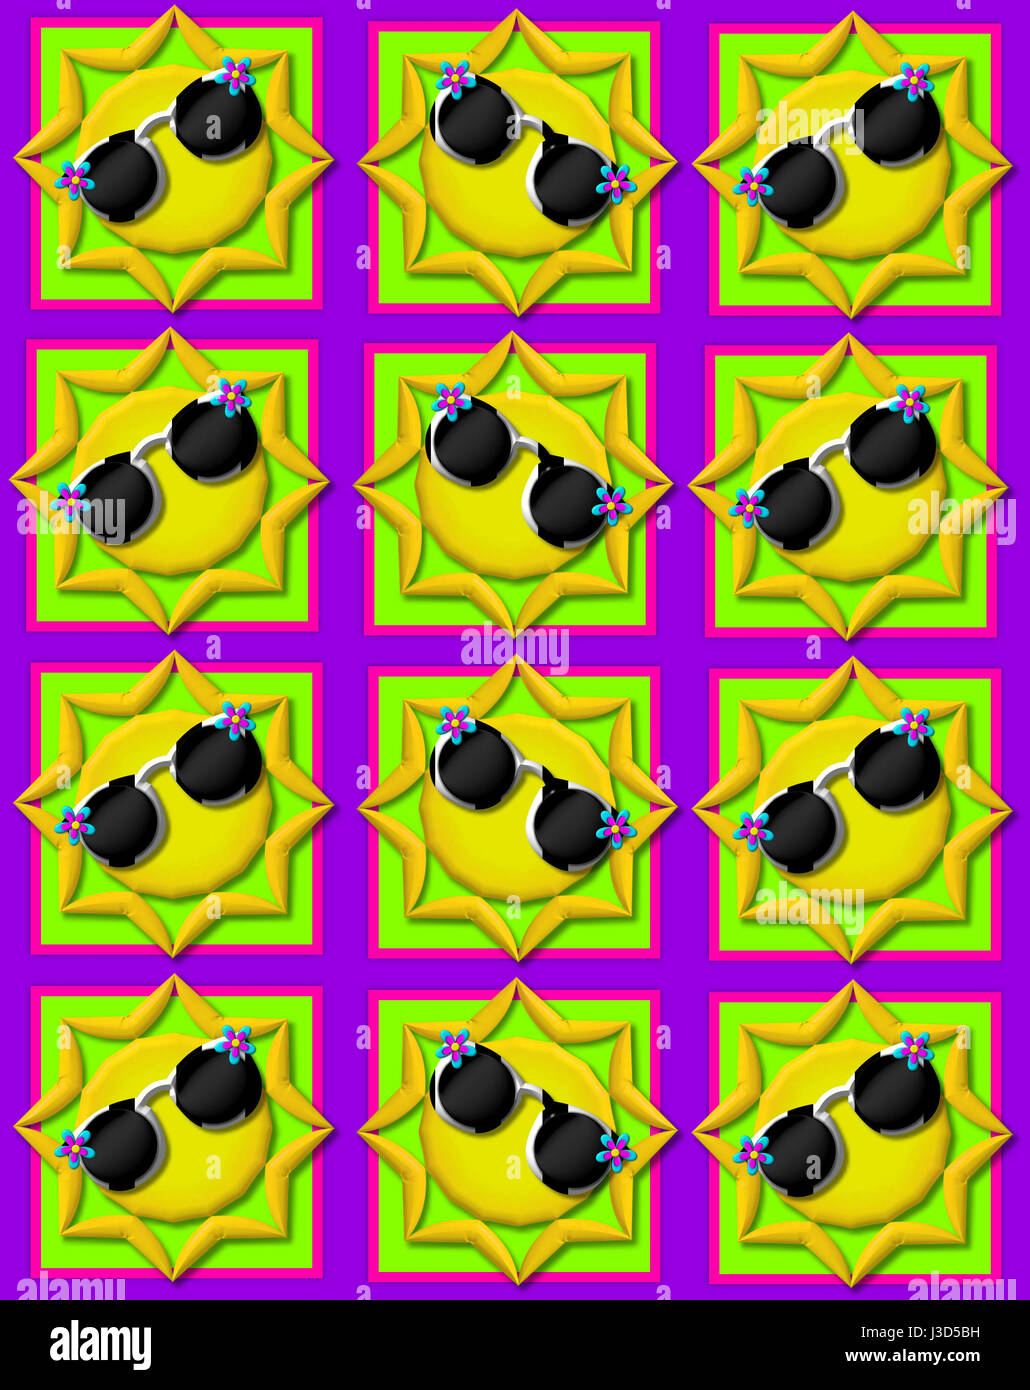 Purple background is decorated with colorful squares.  Squares are topped with yellow sun wearing sunshades. - Stock Image